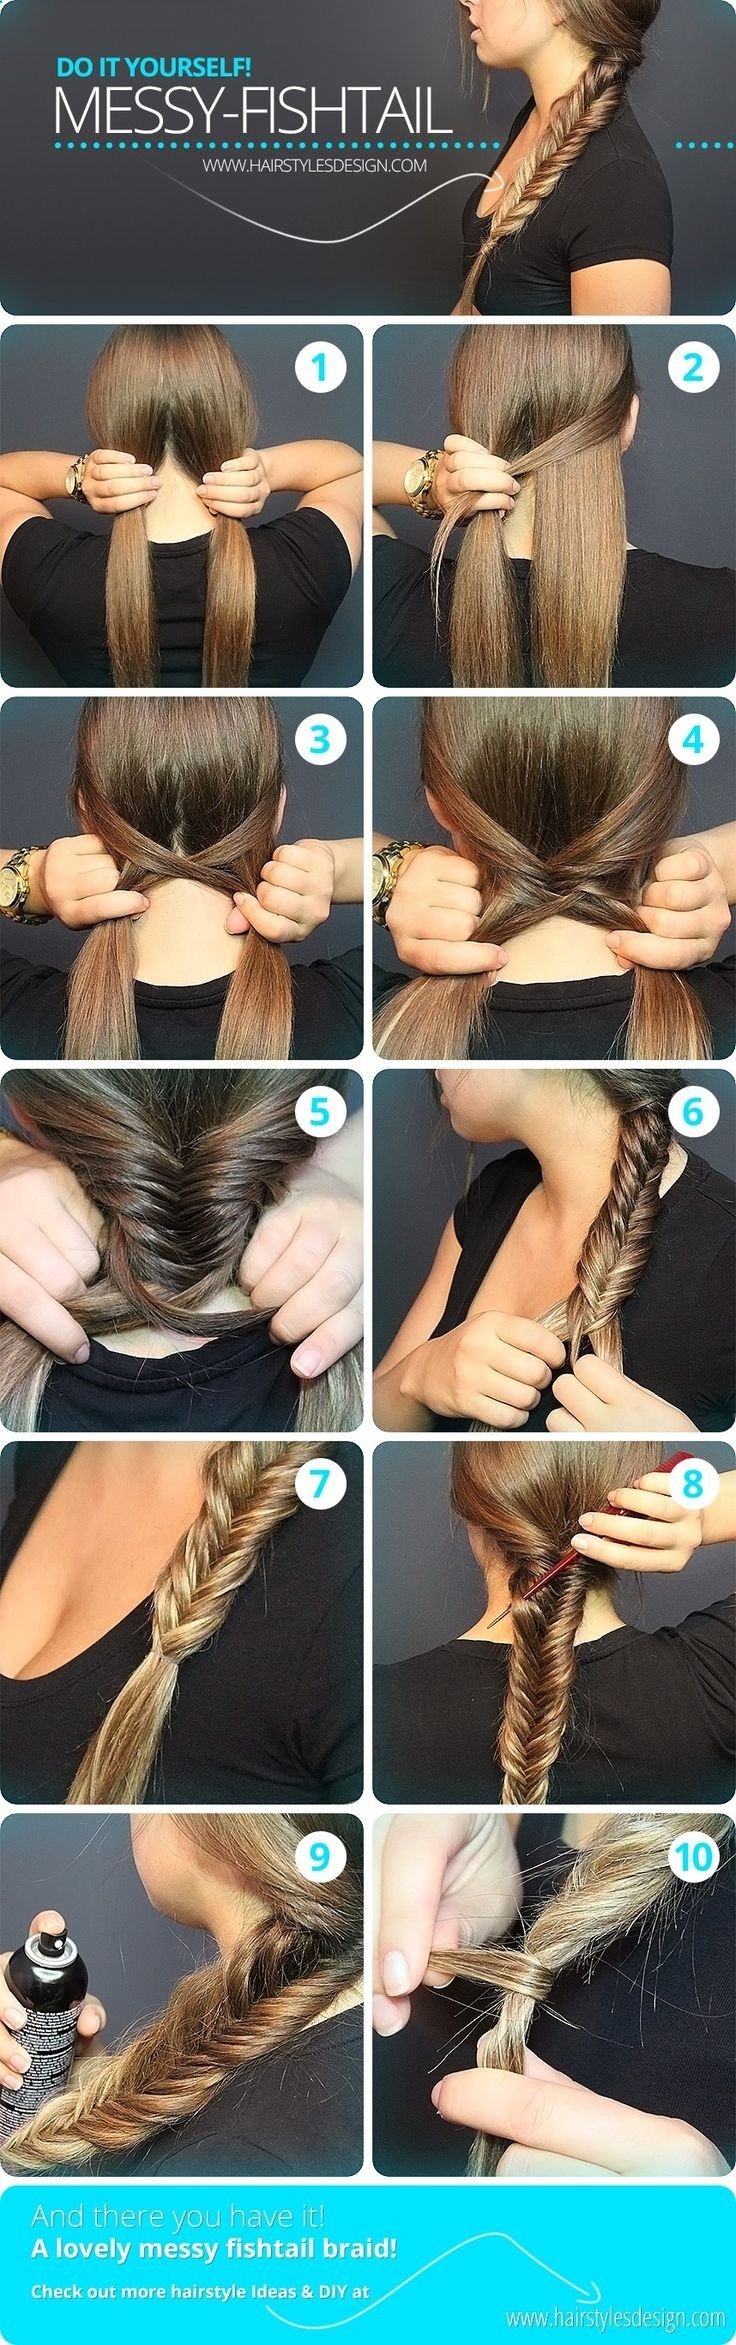 10 Braided Hairstyles from Summer to Fall...